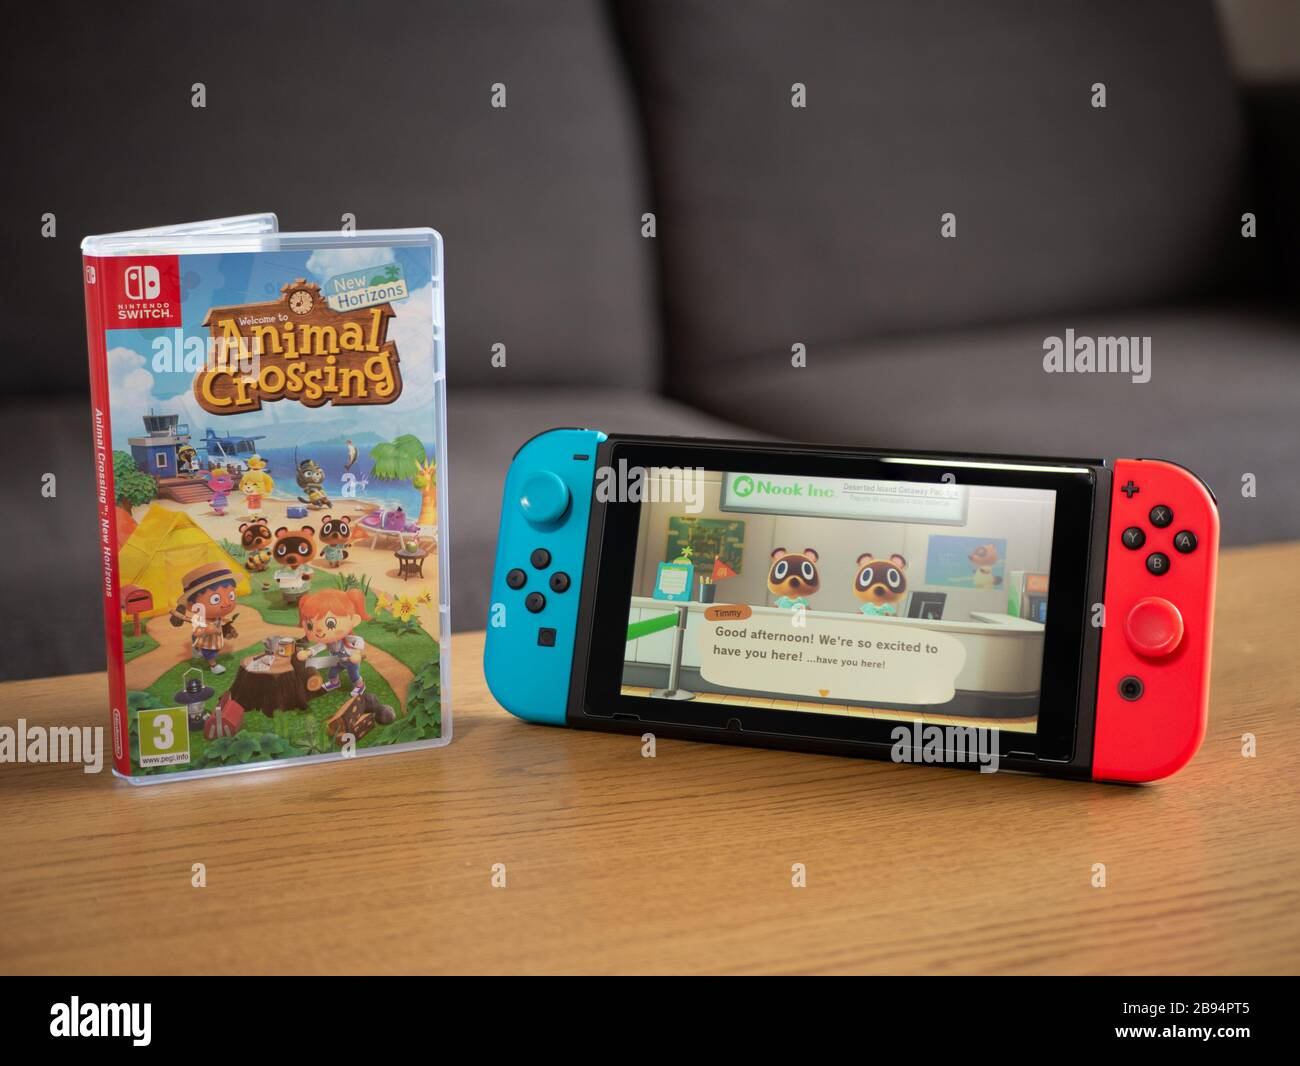 Uk March 2020 Nintendo Switch With Animal Crossing New Horizons